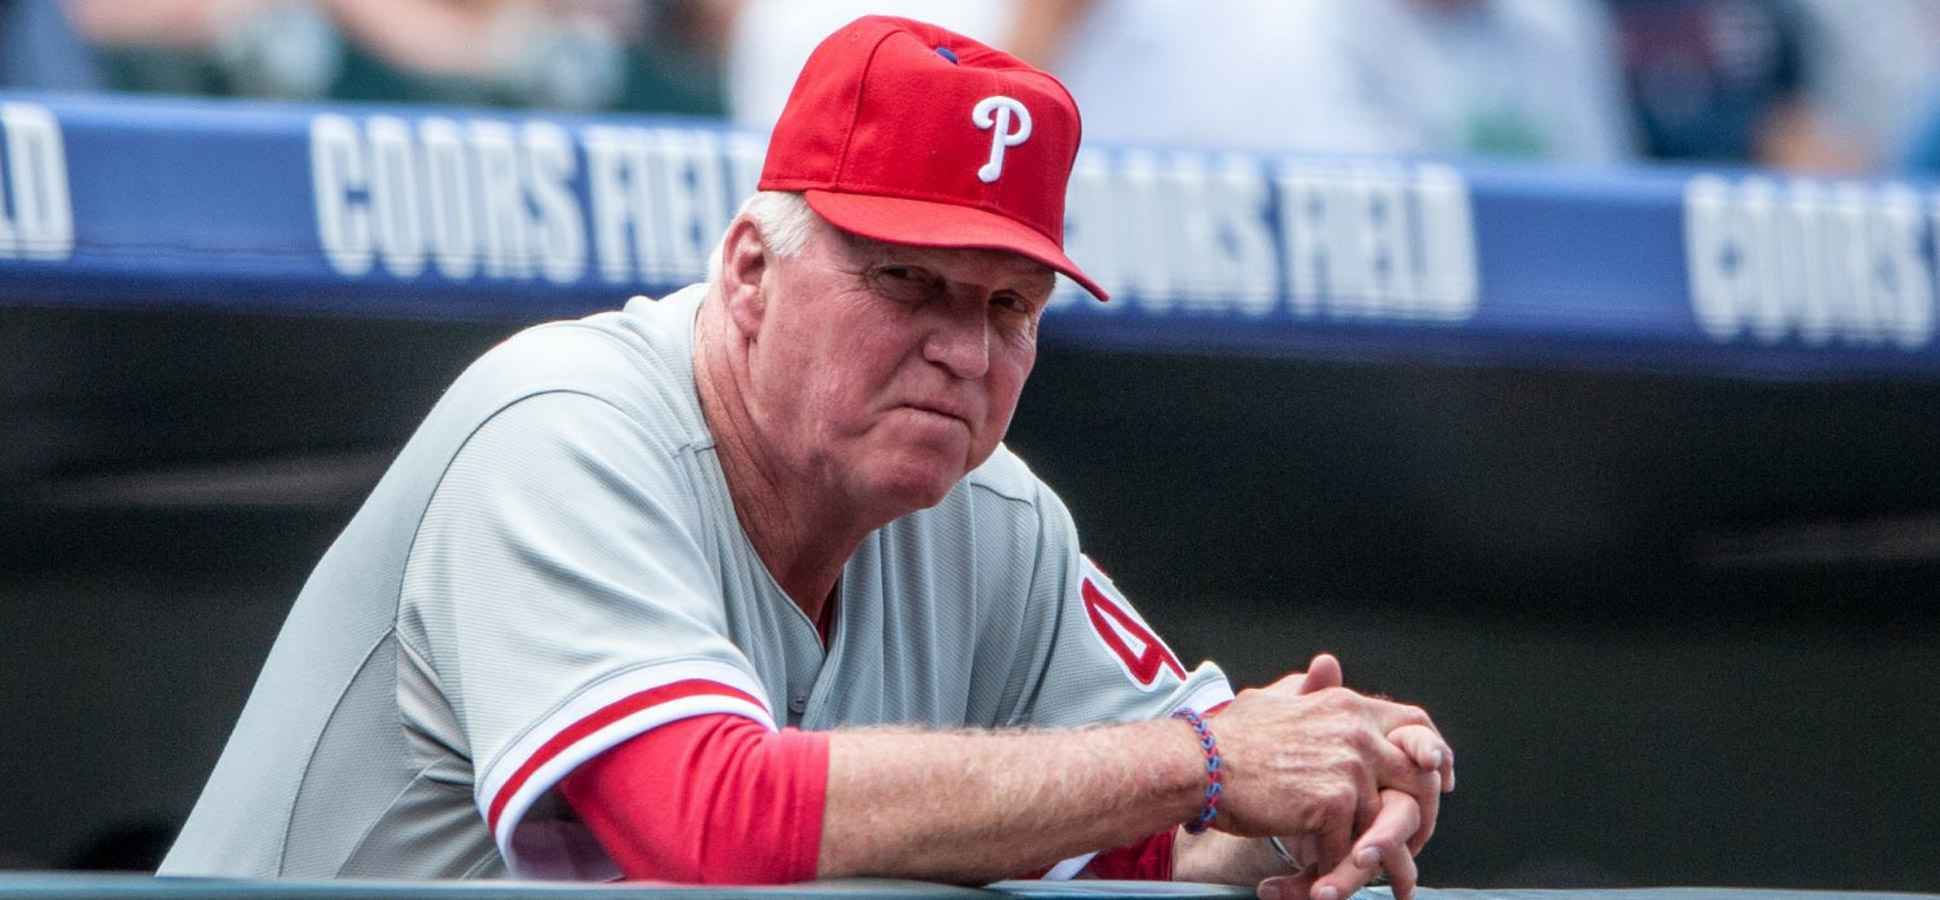 Standout Leadership Technique From Phillies Coach Charlie Manuel